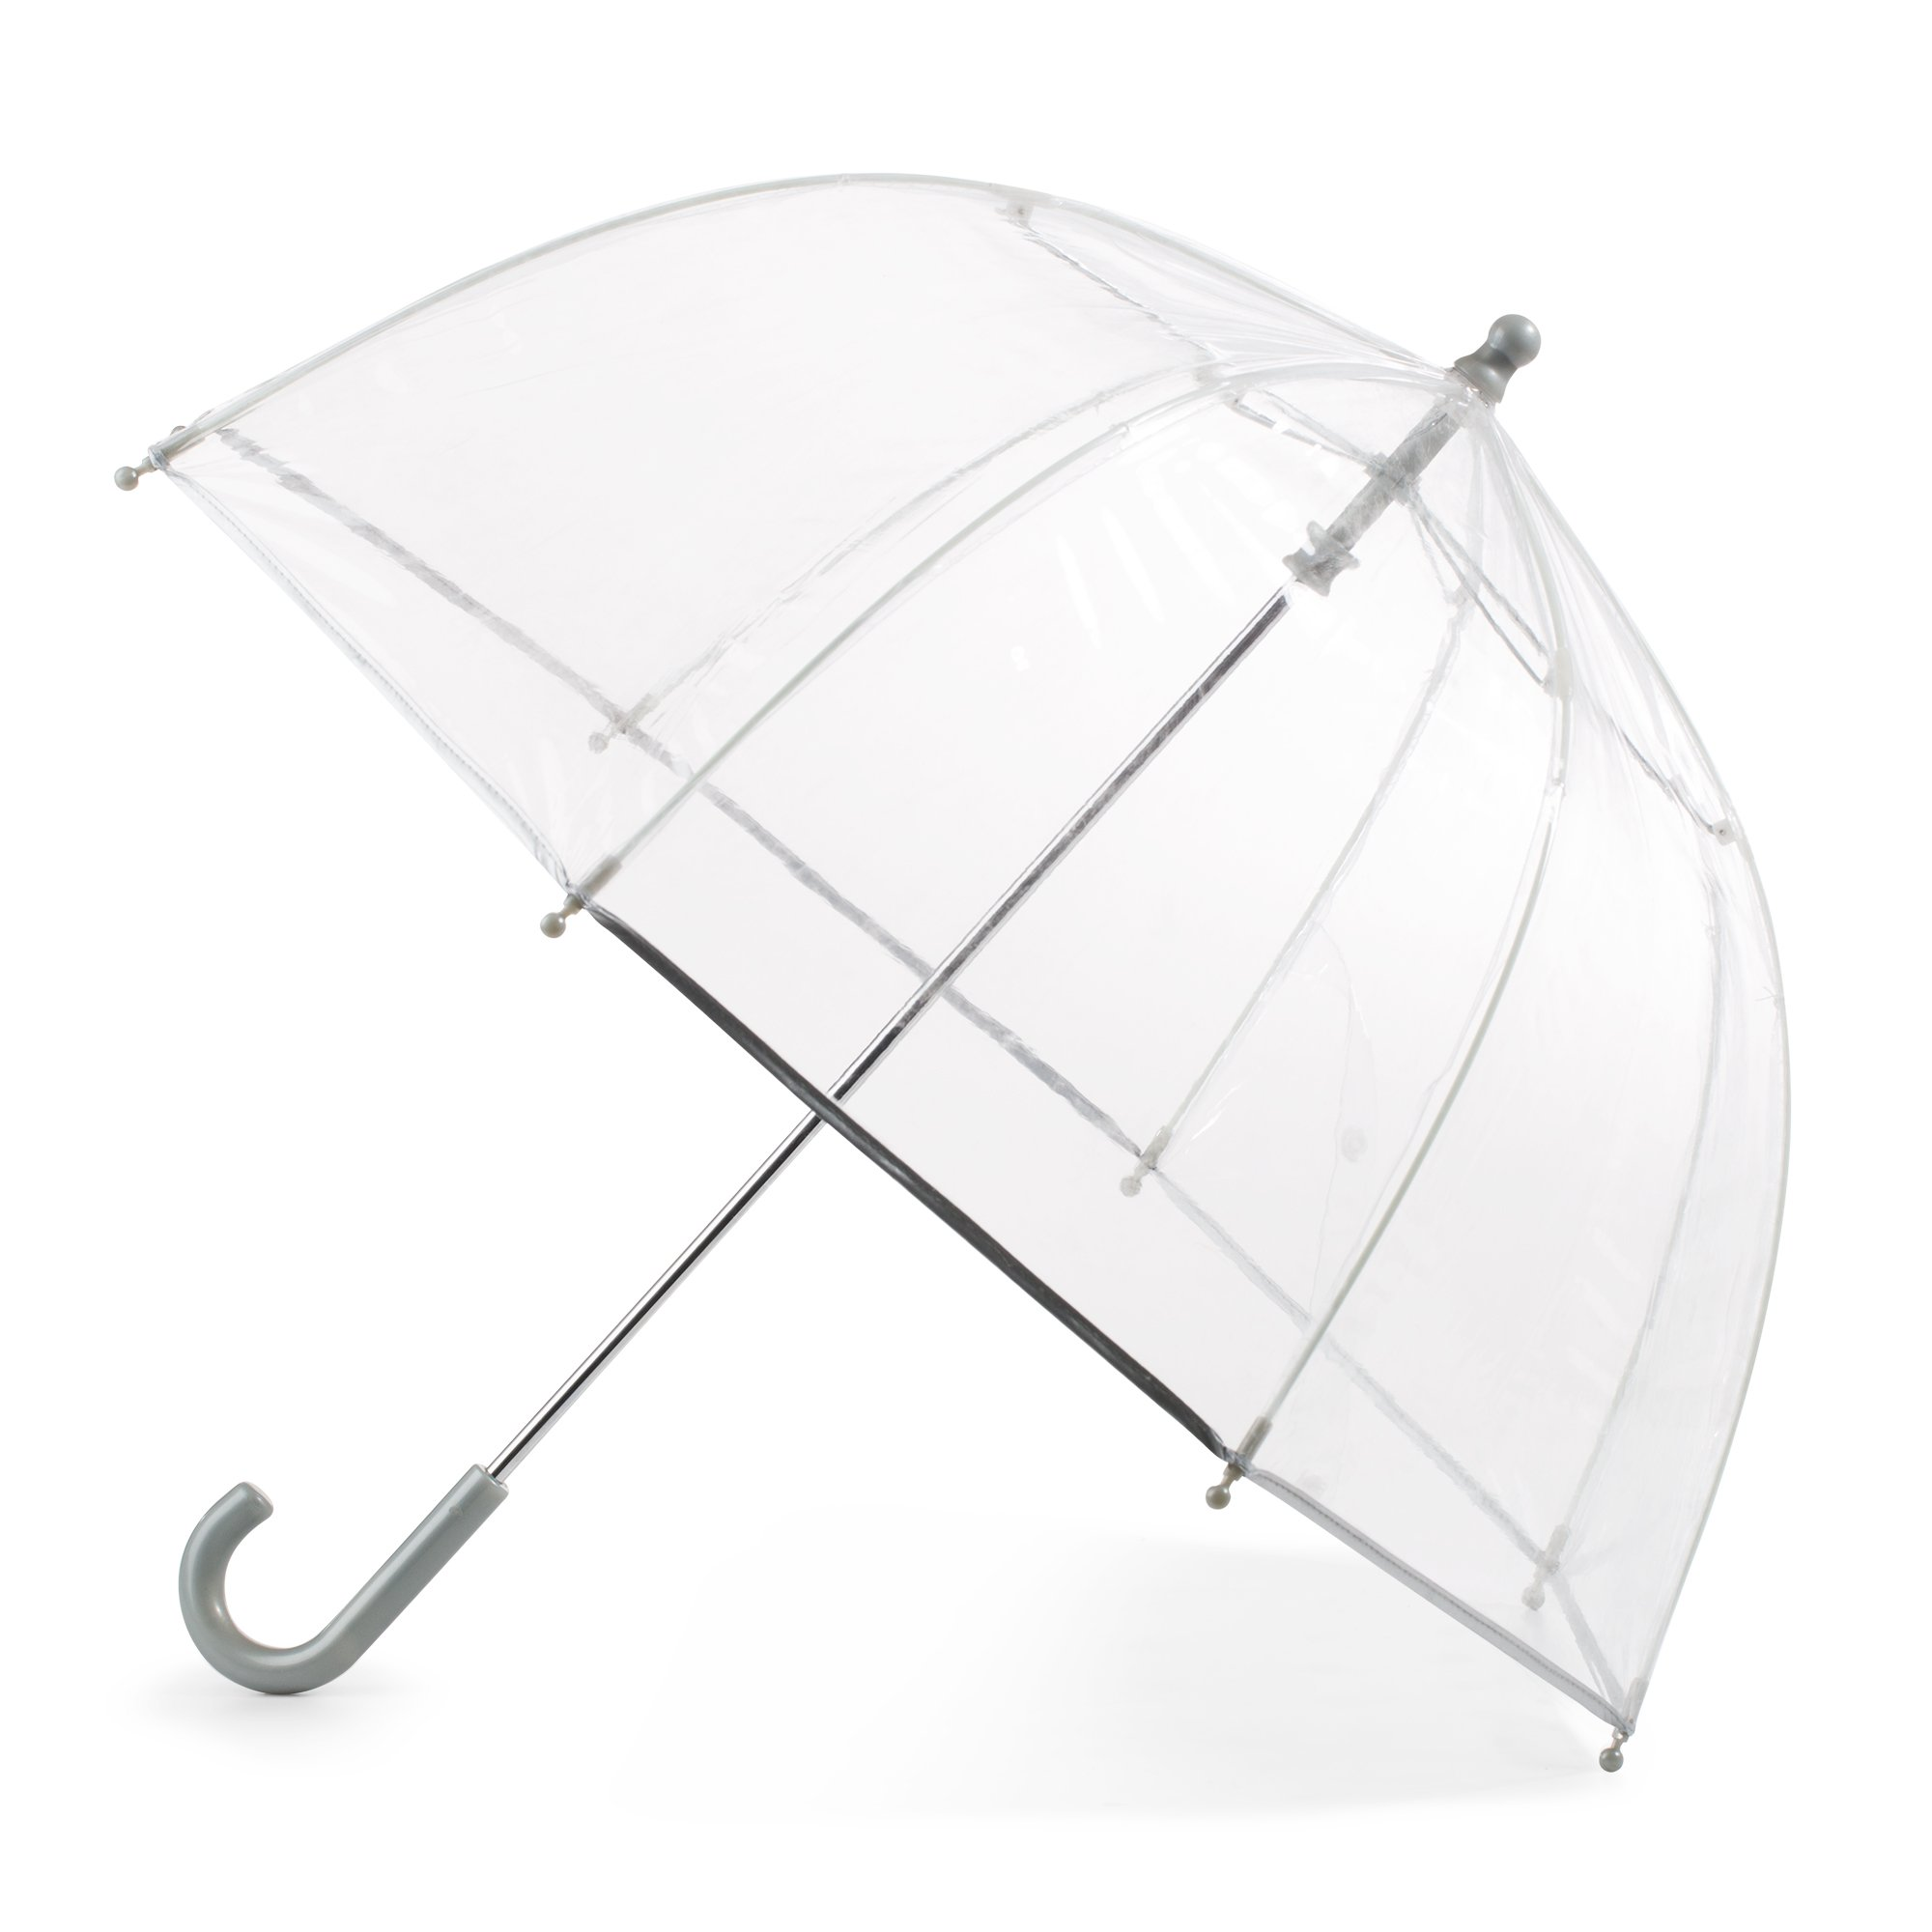 Totes Kid's Bubble Umbrella with Easy Grip Handle, Clear by totes